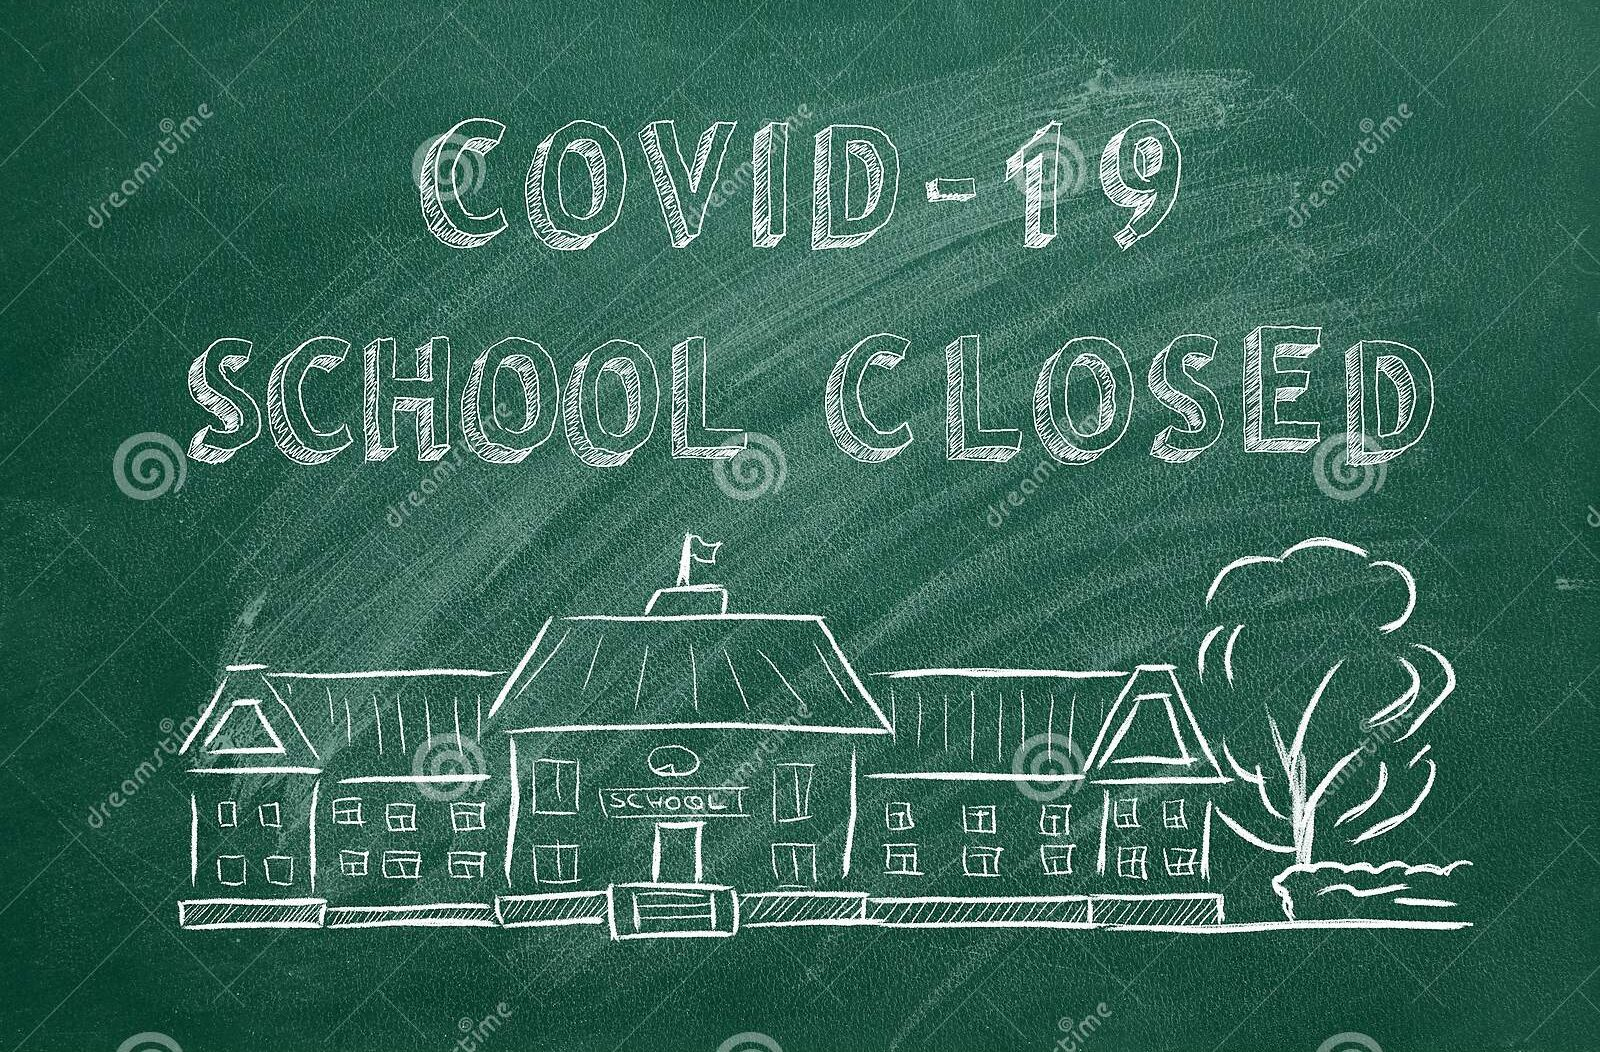 Covid-19 and Pakistan - Where education stands